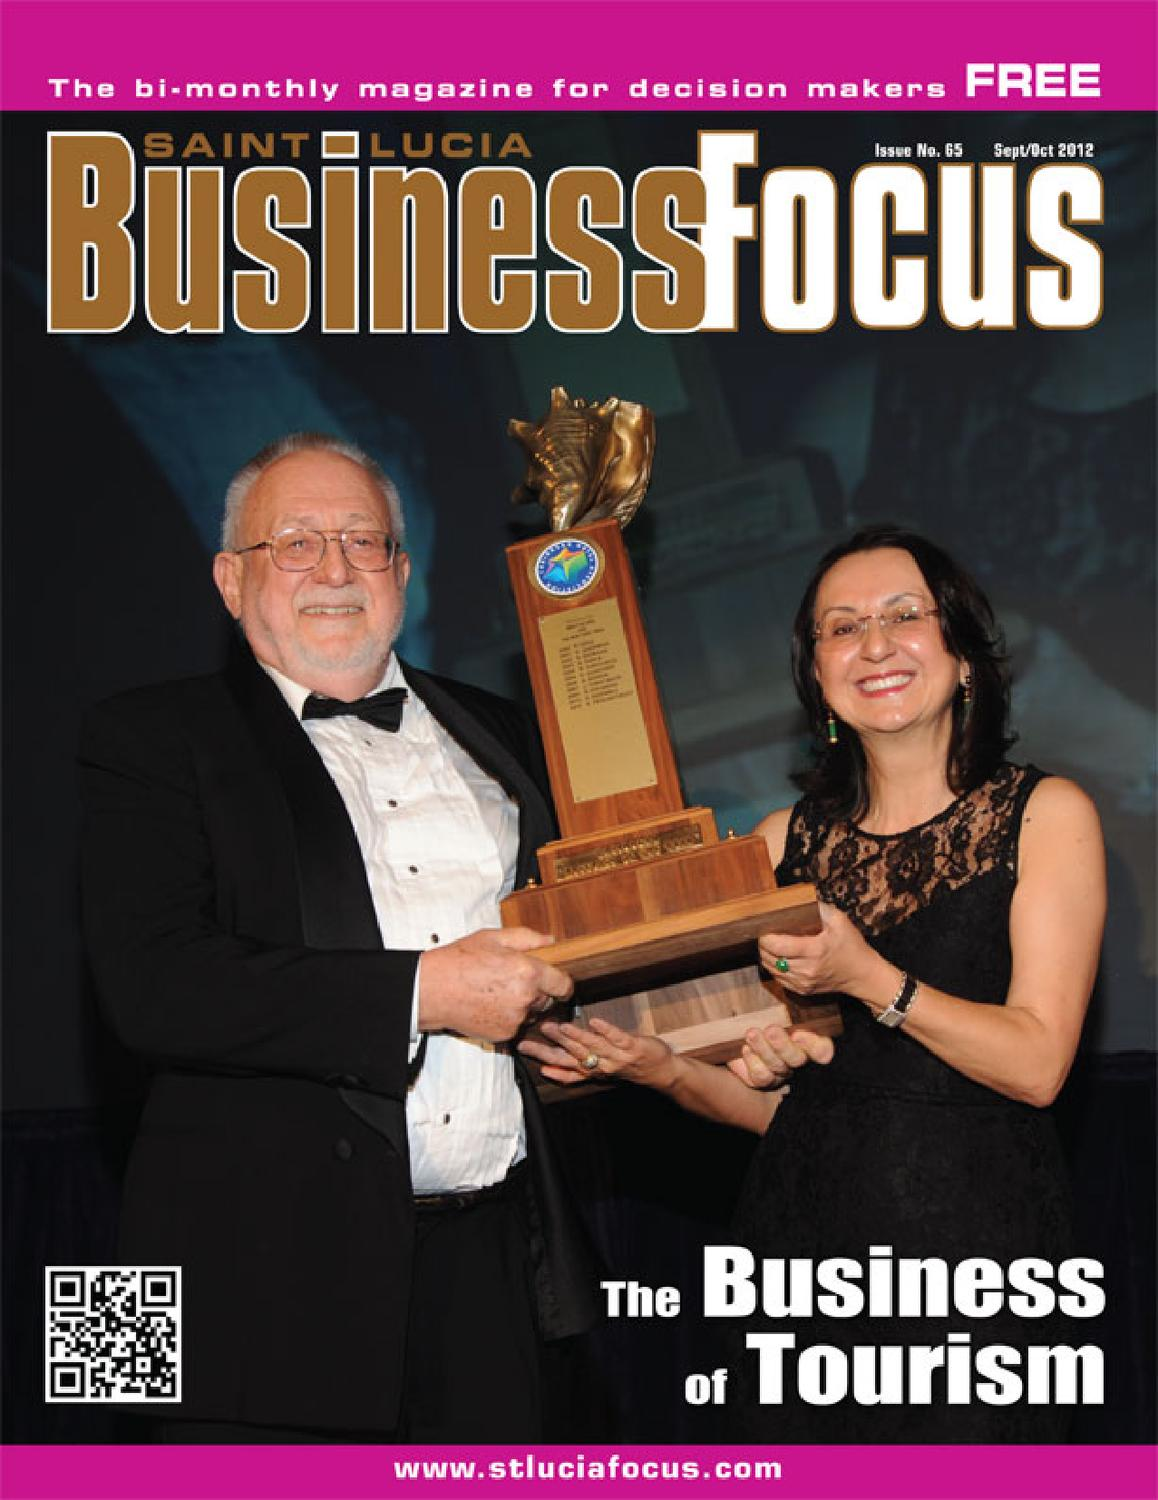 2a931b5de21c St. Lucia Business Focus 65 by AMS St. Lucia - issuu